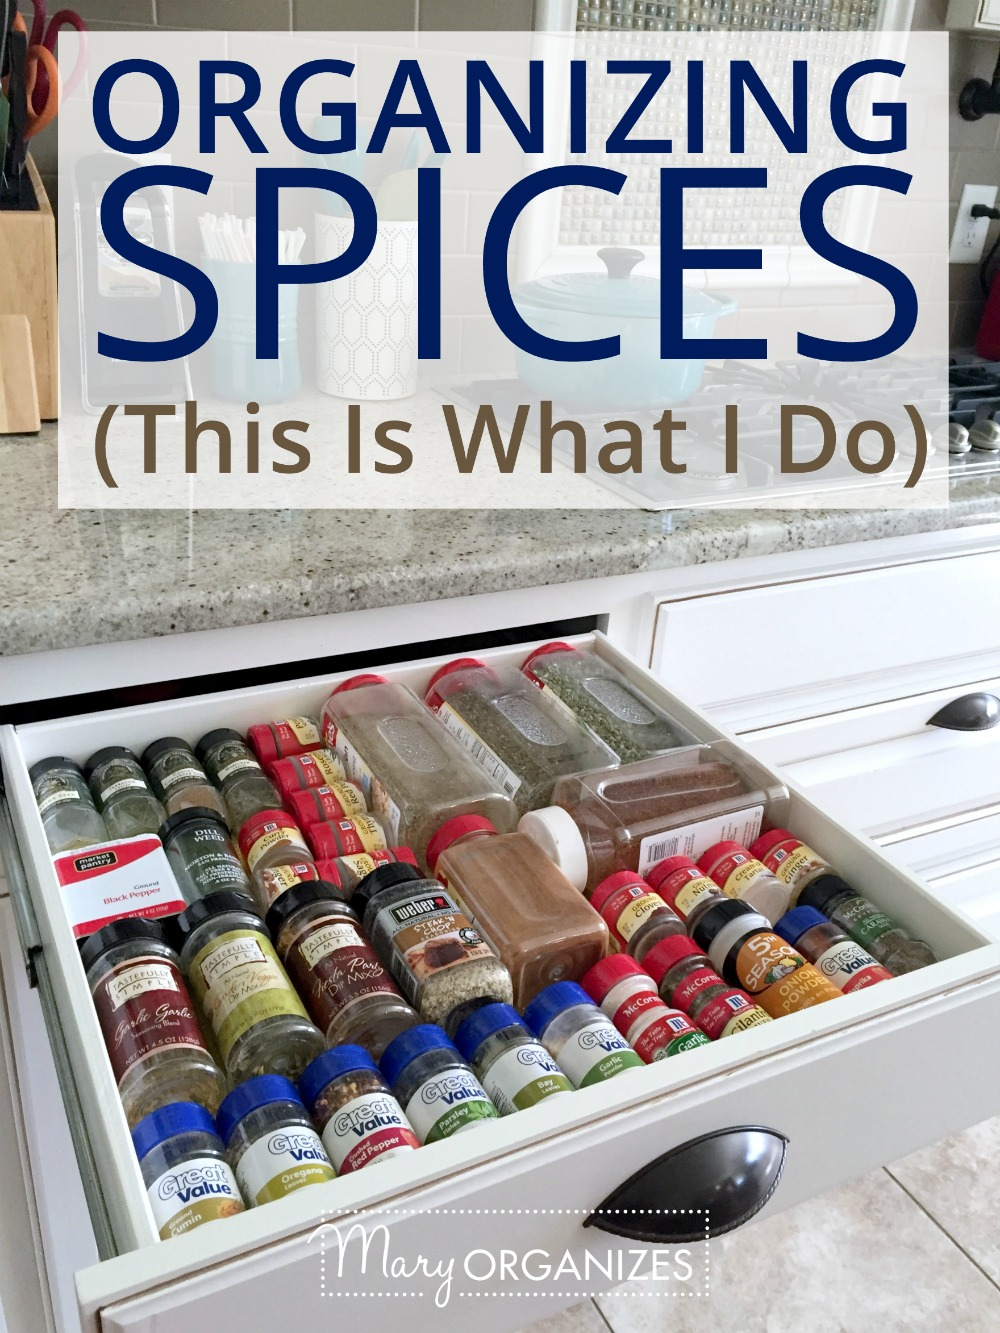 Organizing Spices - This is What I Do -v